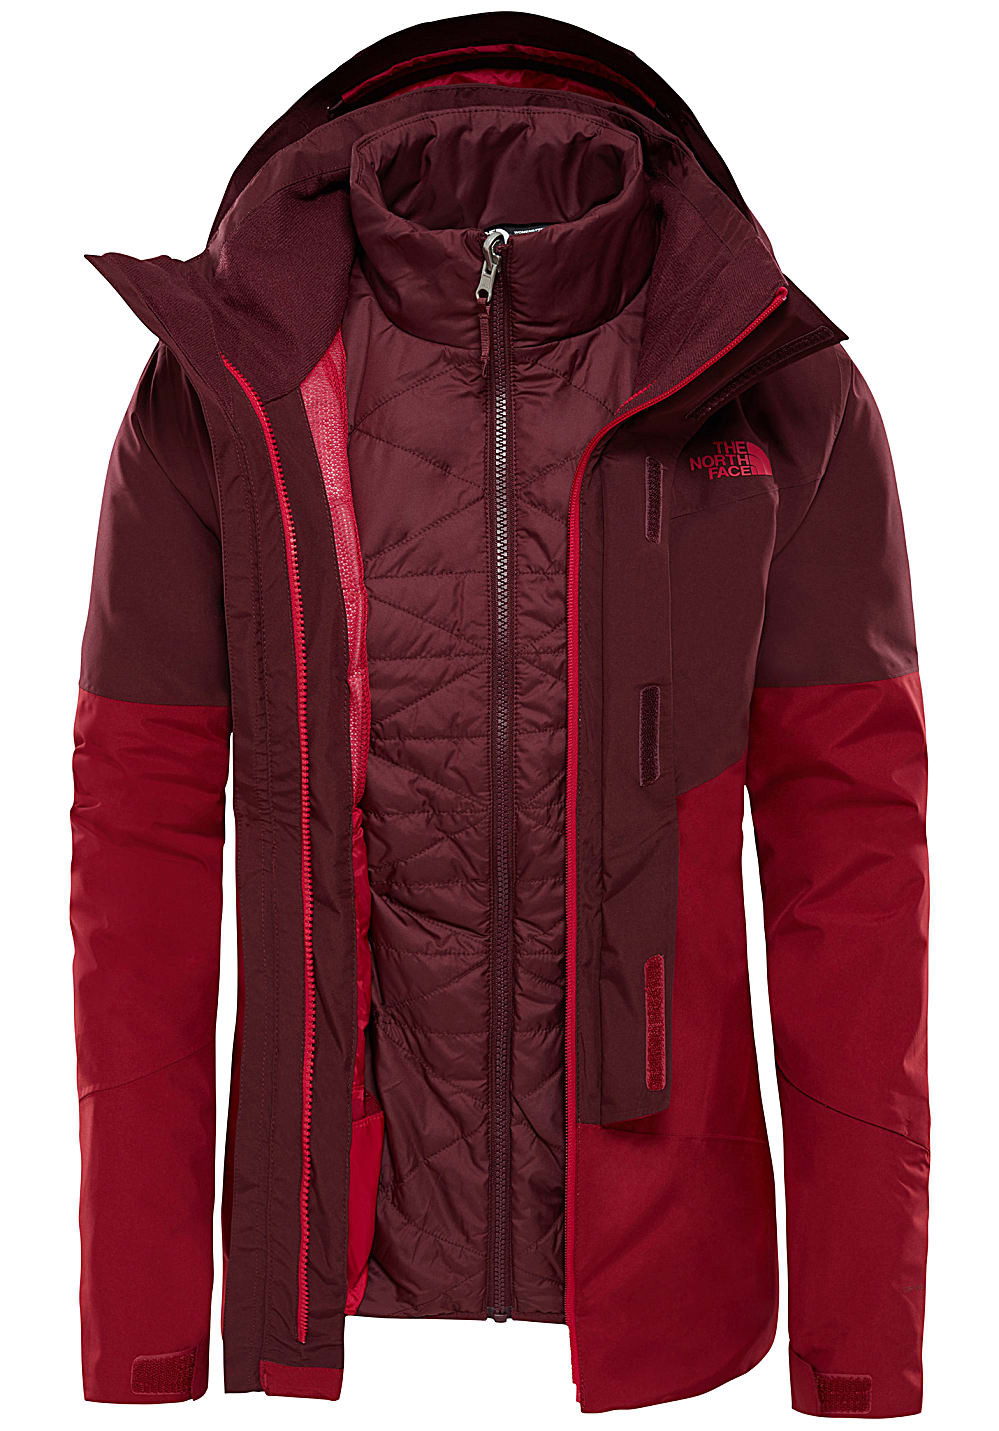 6e81505aa THE NORTH FACE Garner Triclimate - Outdoor Jacket for Women - Red